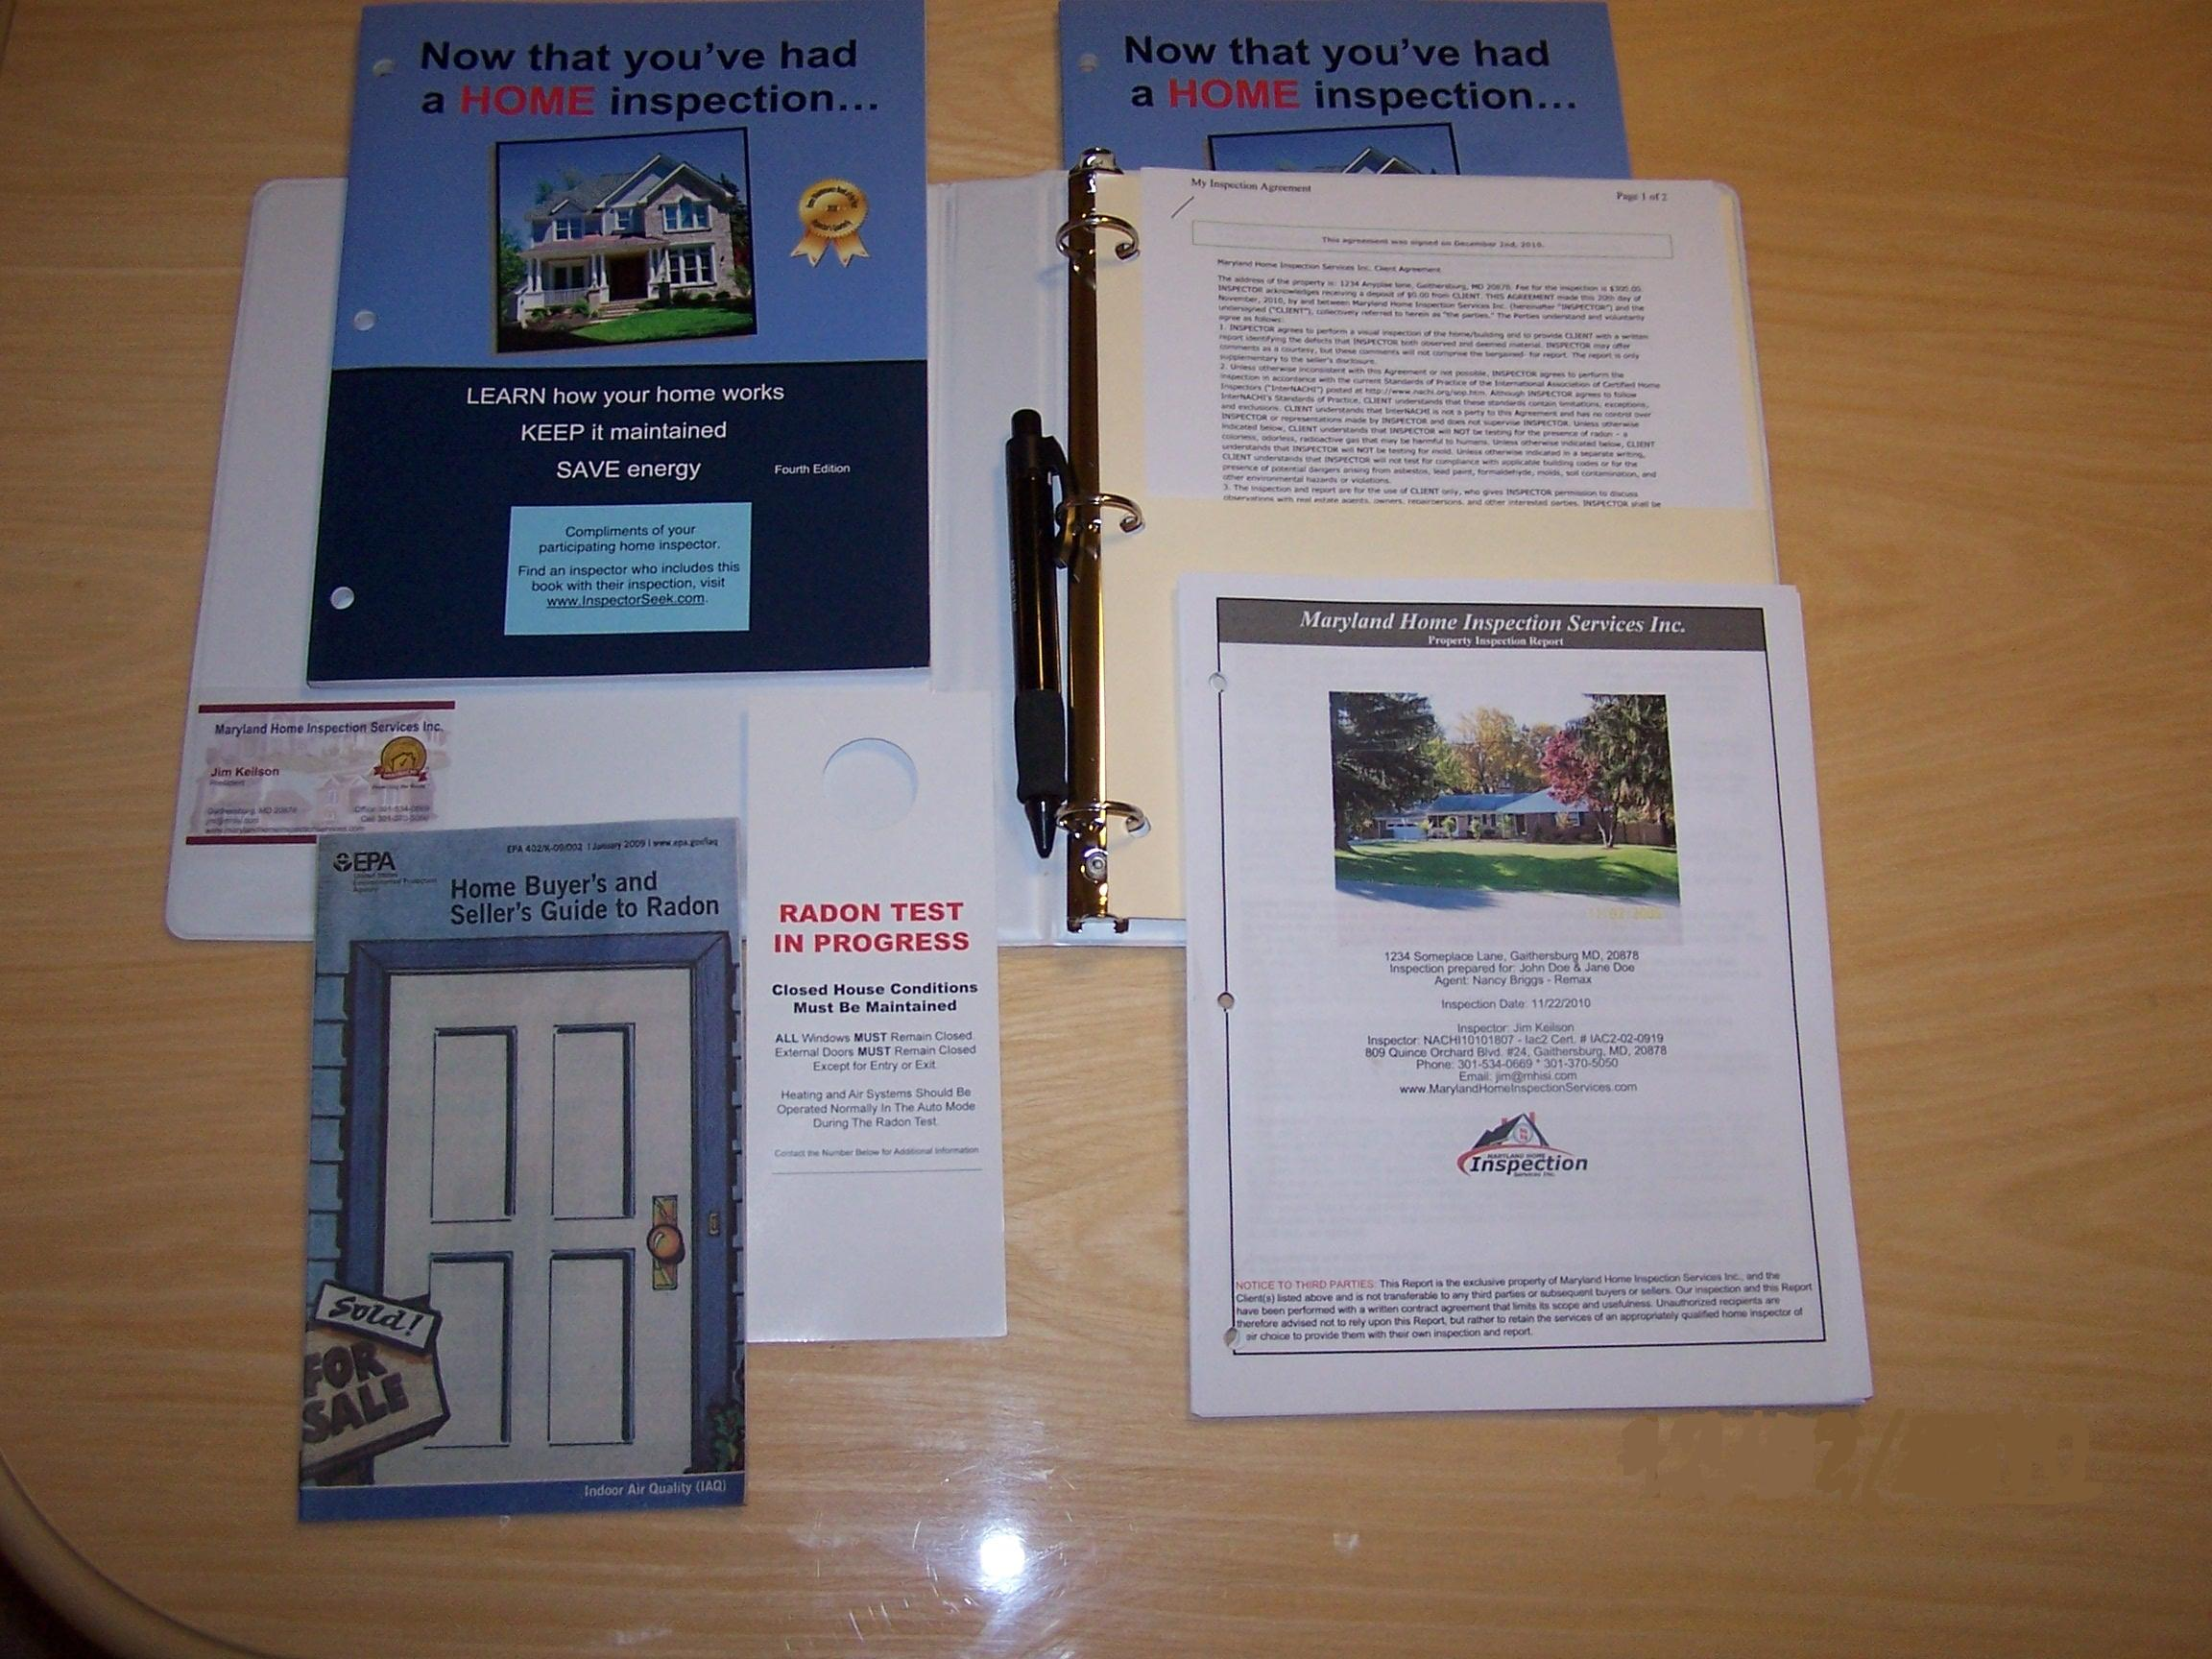 Maryland Home Inspection Reports